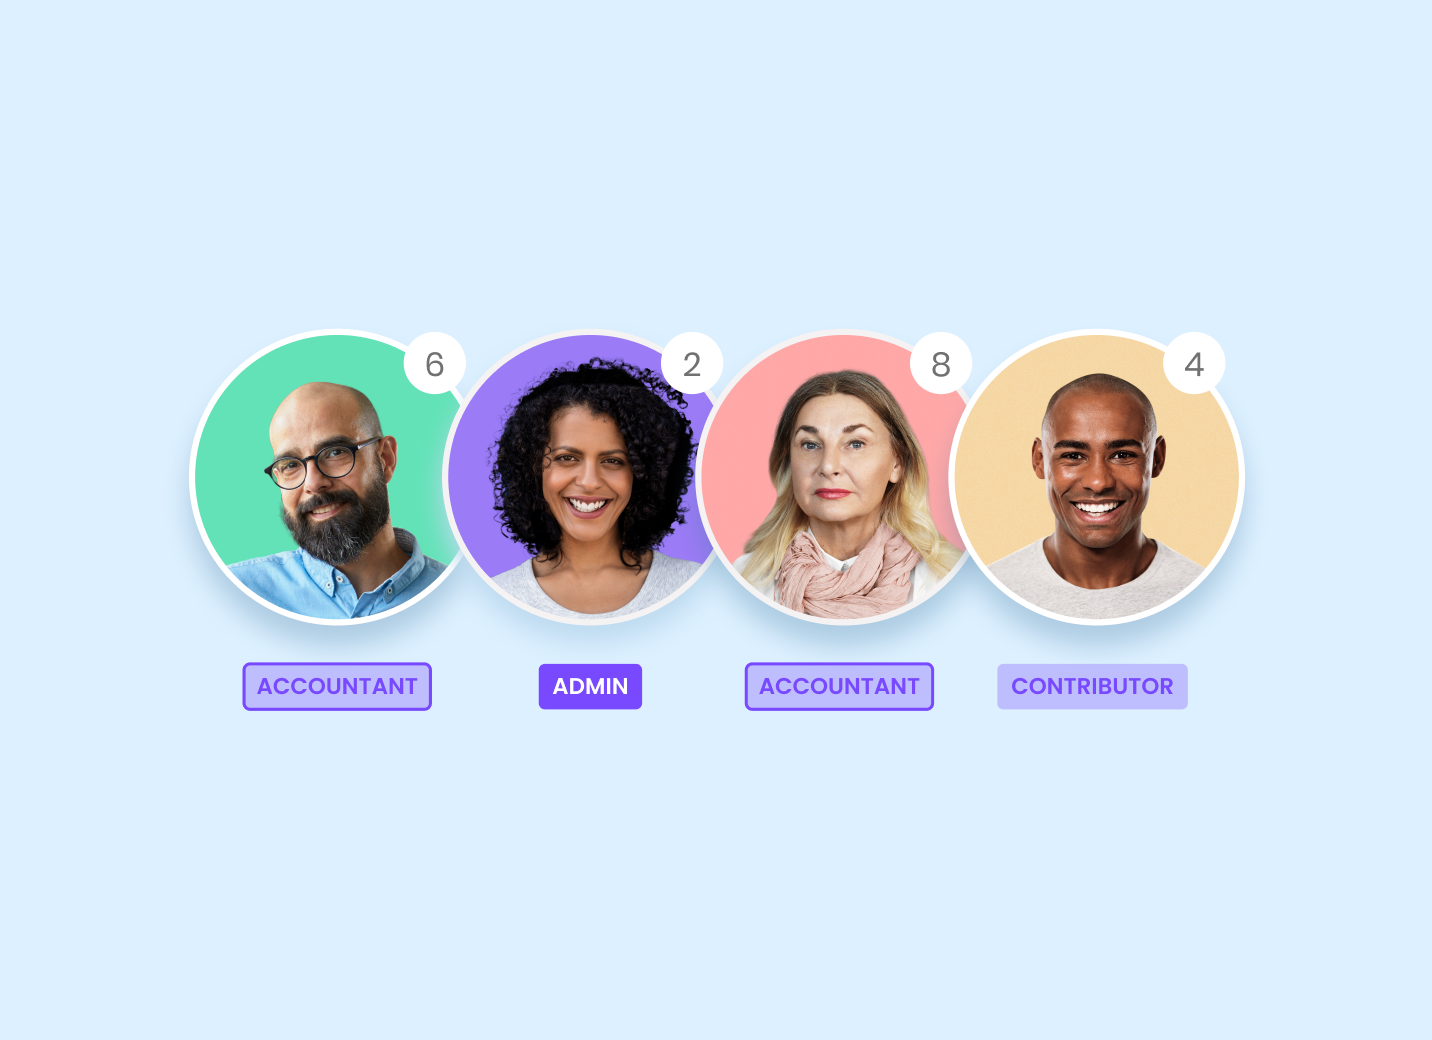 Introducing the Team Dashboard to better manage your accounting team